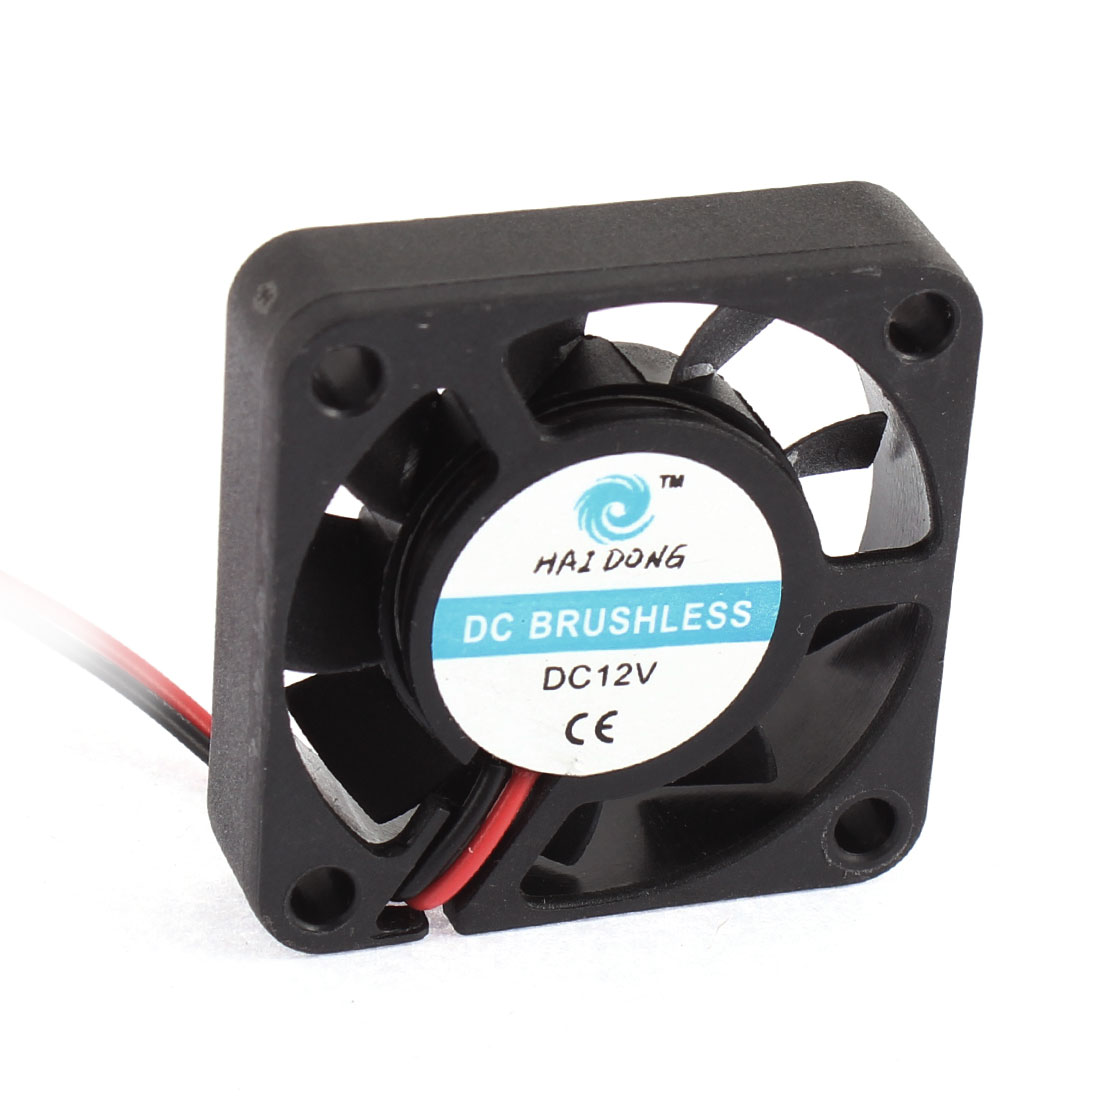 DC 12V Computer Case Sleeve Bearing CPU Cooling Fan 40 x 40 x 10mm